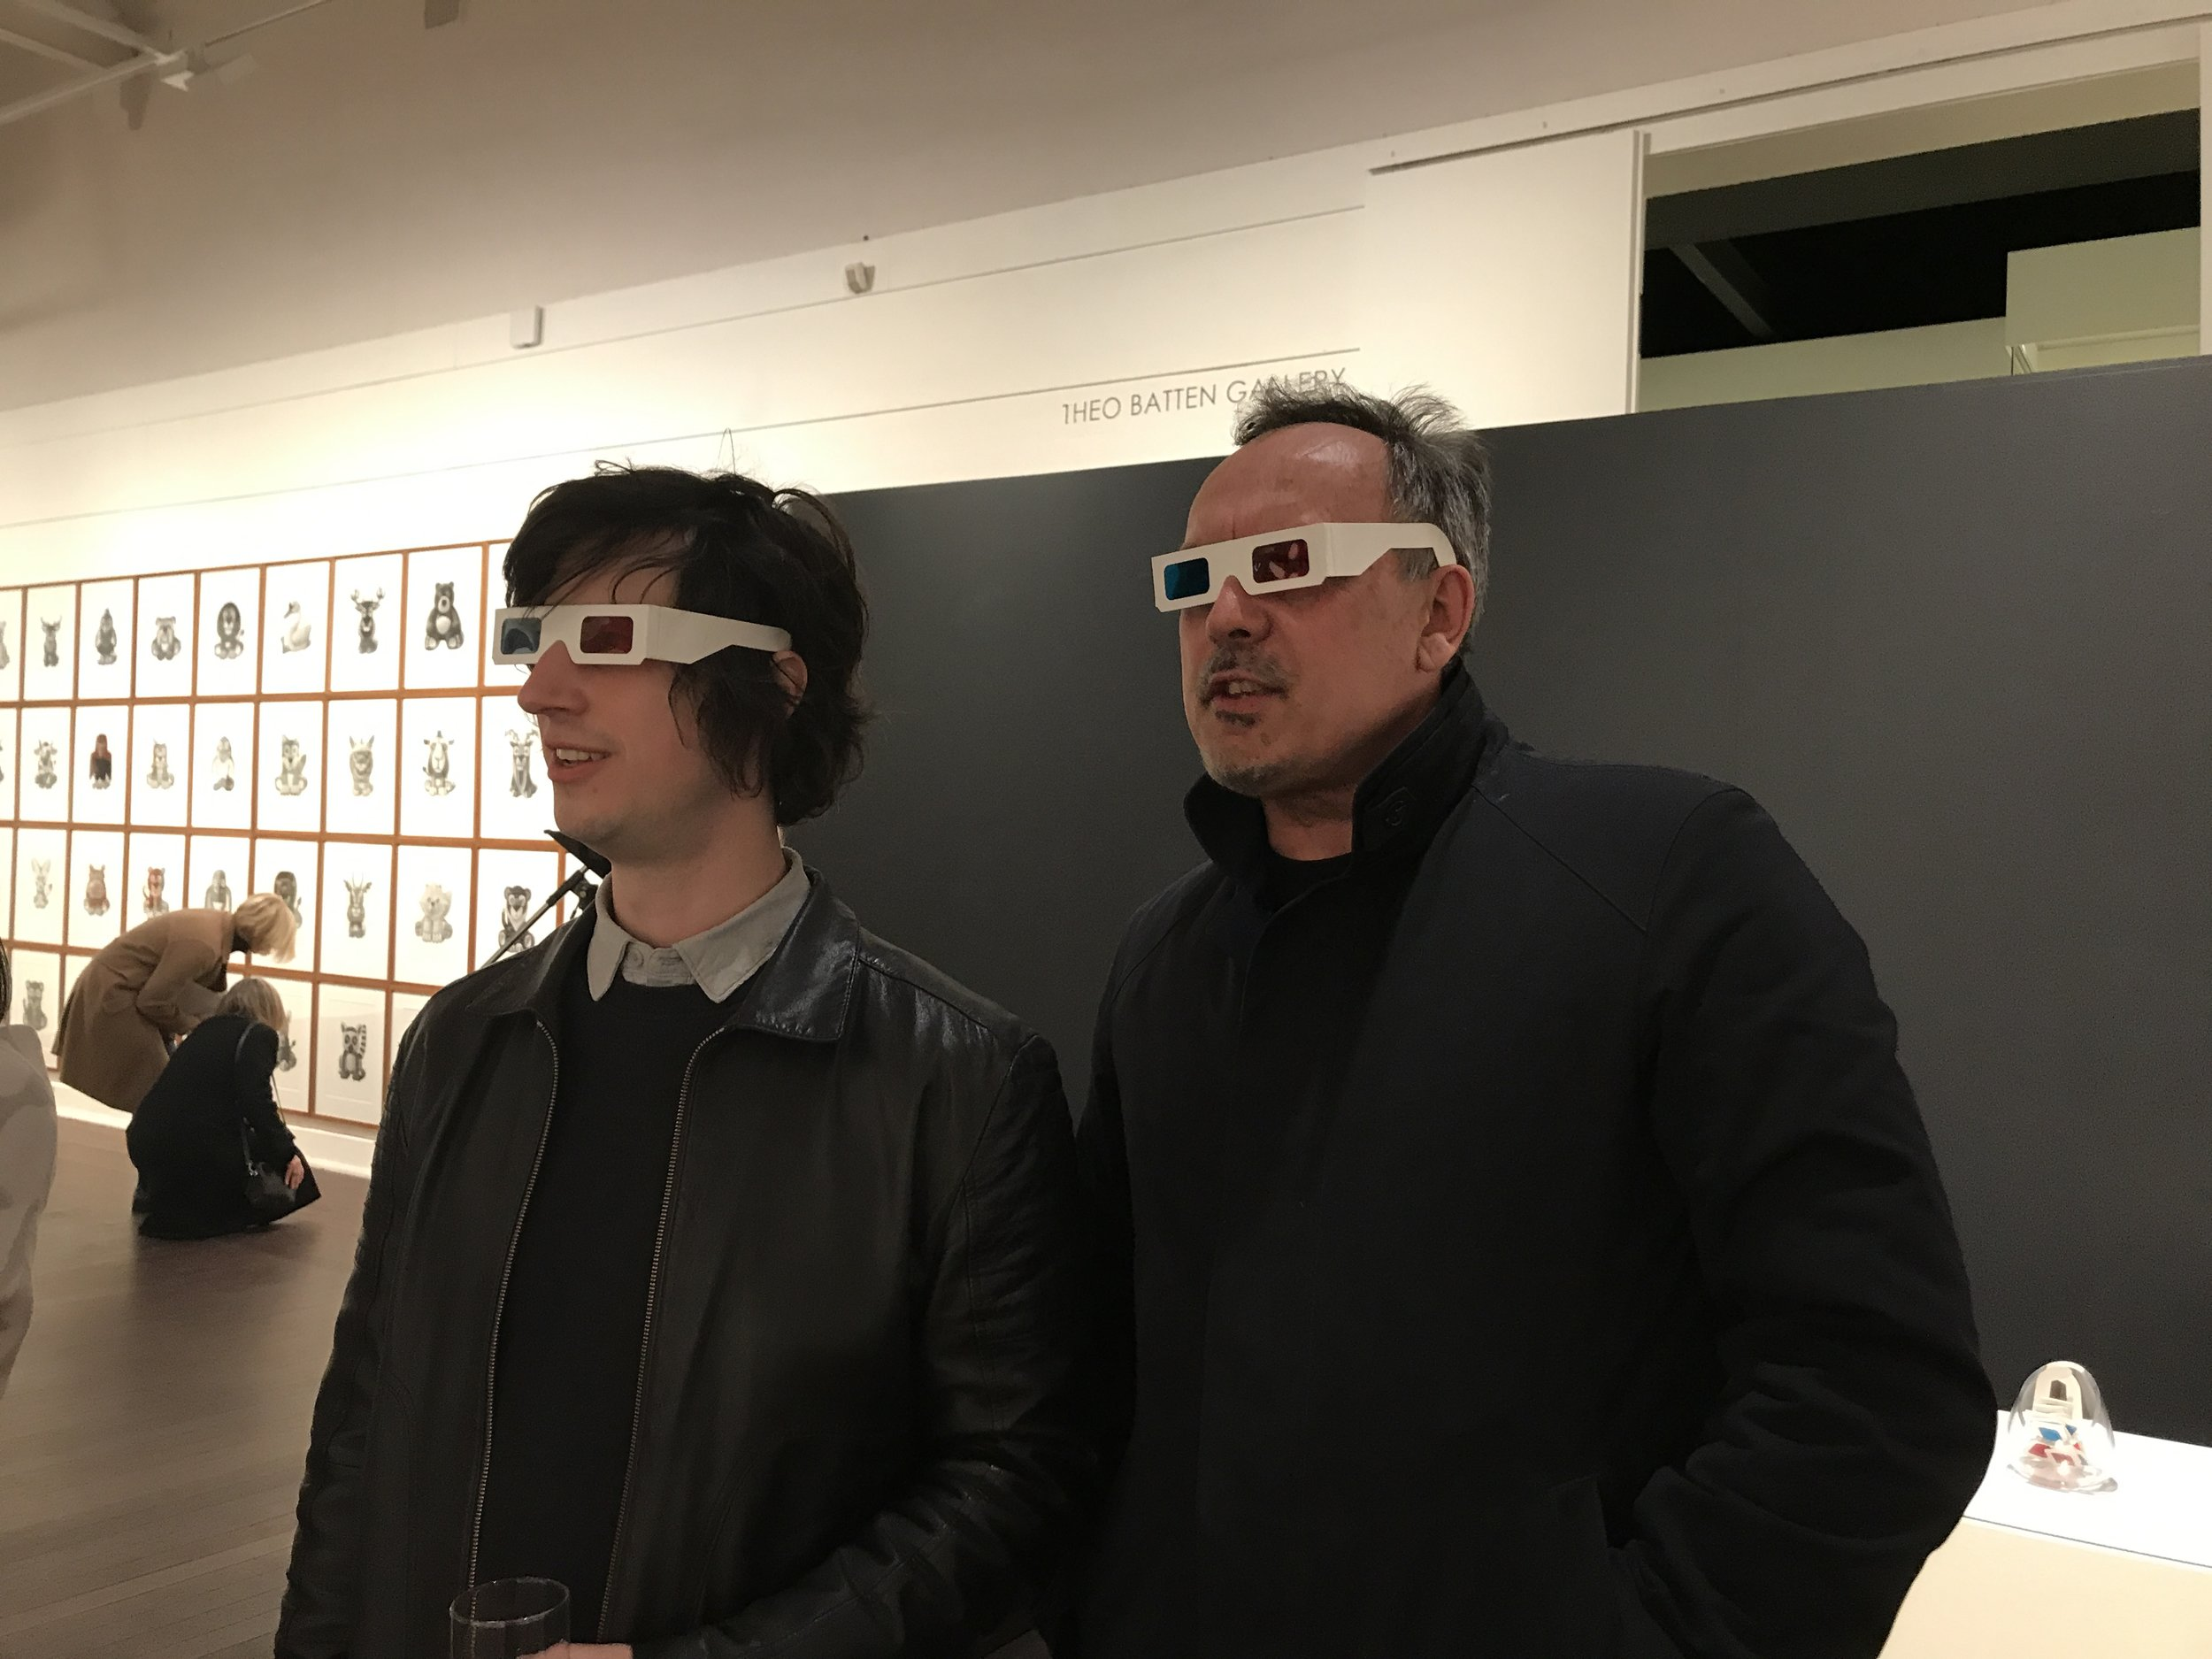 Fellow exhibiting artists Tony Curran and Michael Kempson enjoying the optical illusion of my work  Ocularanagluphos  in  Aura: Repetition, Reproduction, and the Mark of the Artist